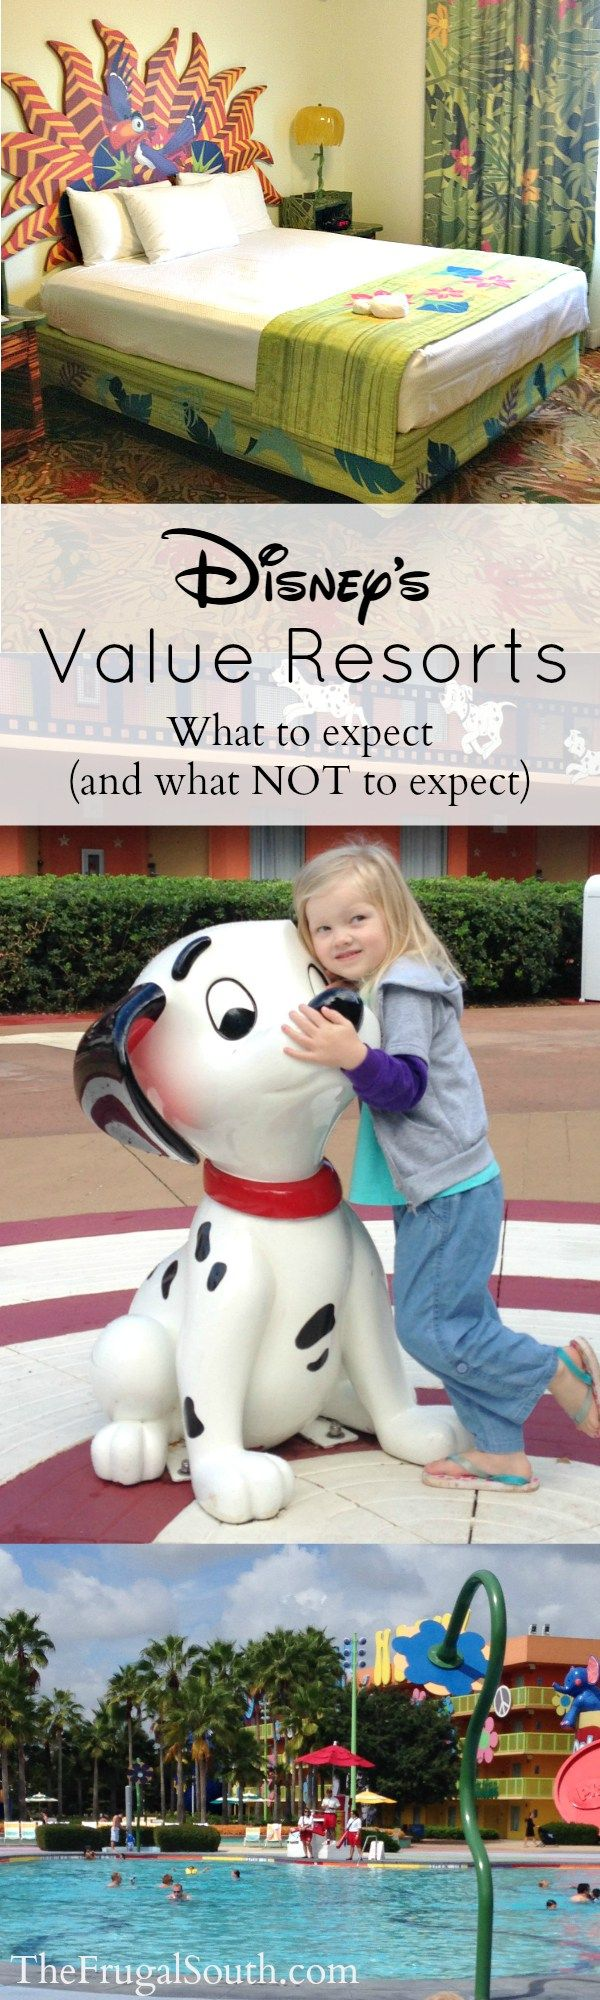 Disney World Value Resorts offer incredible bang for the buck, but they aren't for everyone! Here's what to expect at Disney's Value Resorts in terms of rooms, amenities, transportation, cost and more.